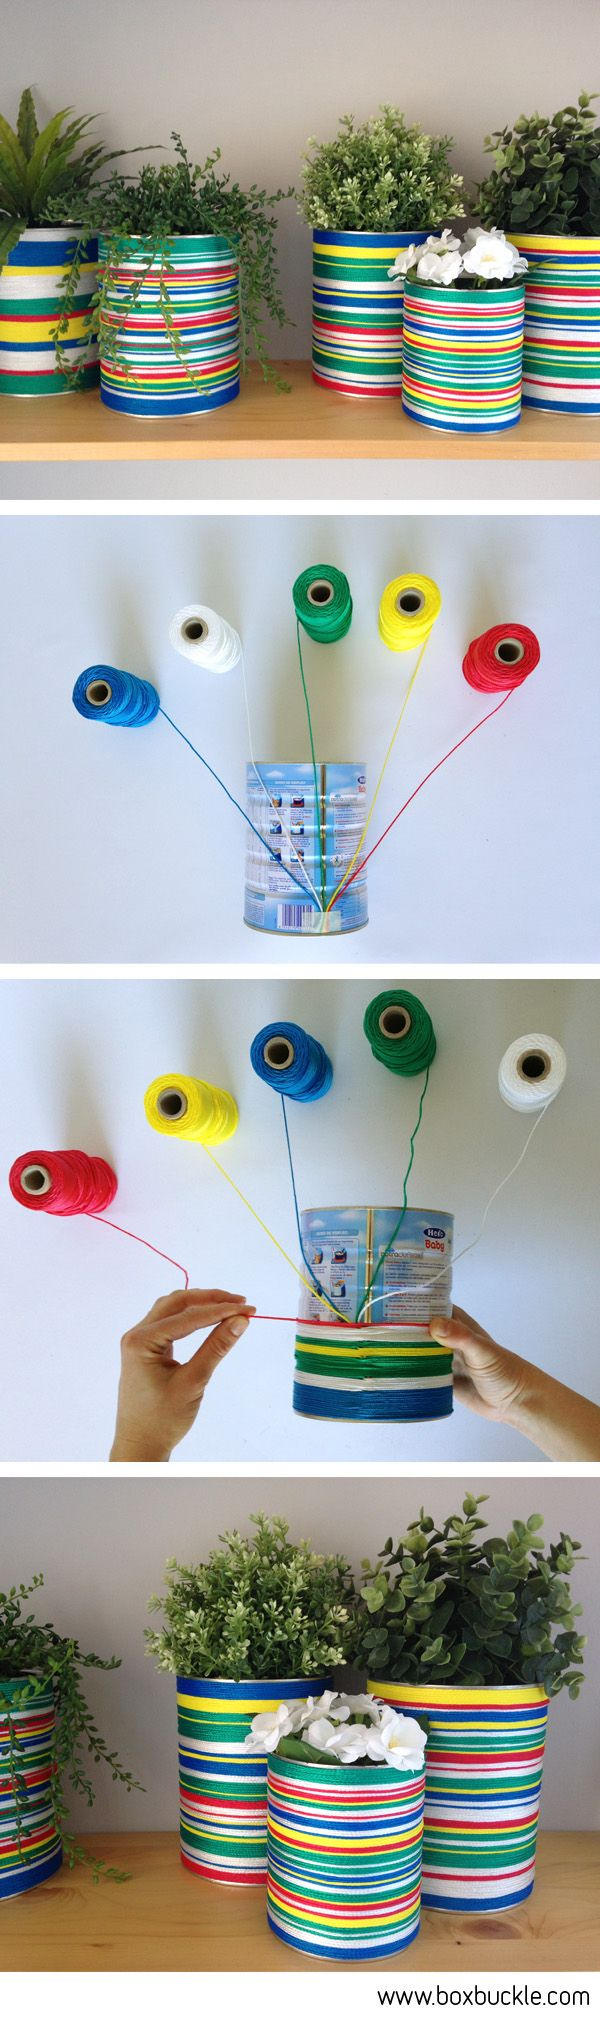 DIY TUTORIAL, bote de leche infantil forrado con cordeles de colores (idea de DAMA design) colored tin can planters with strings